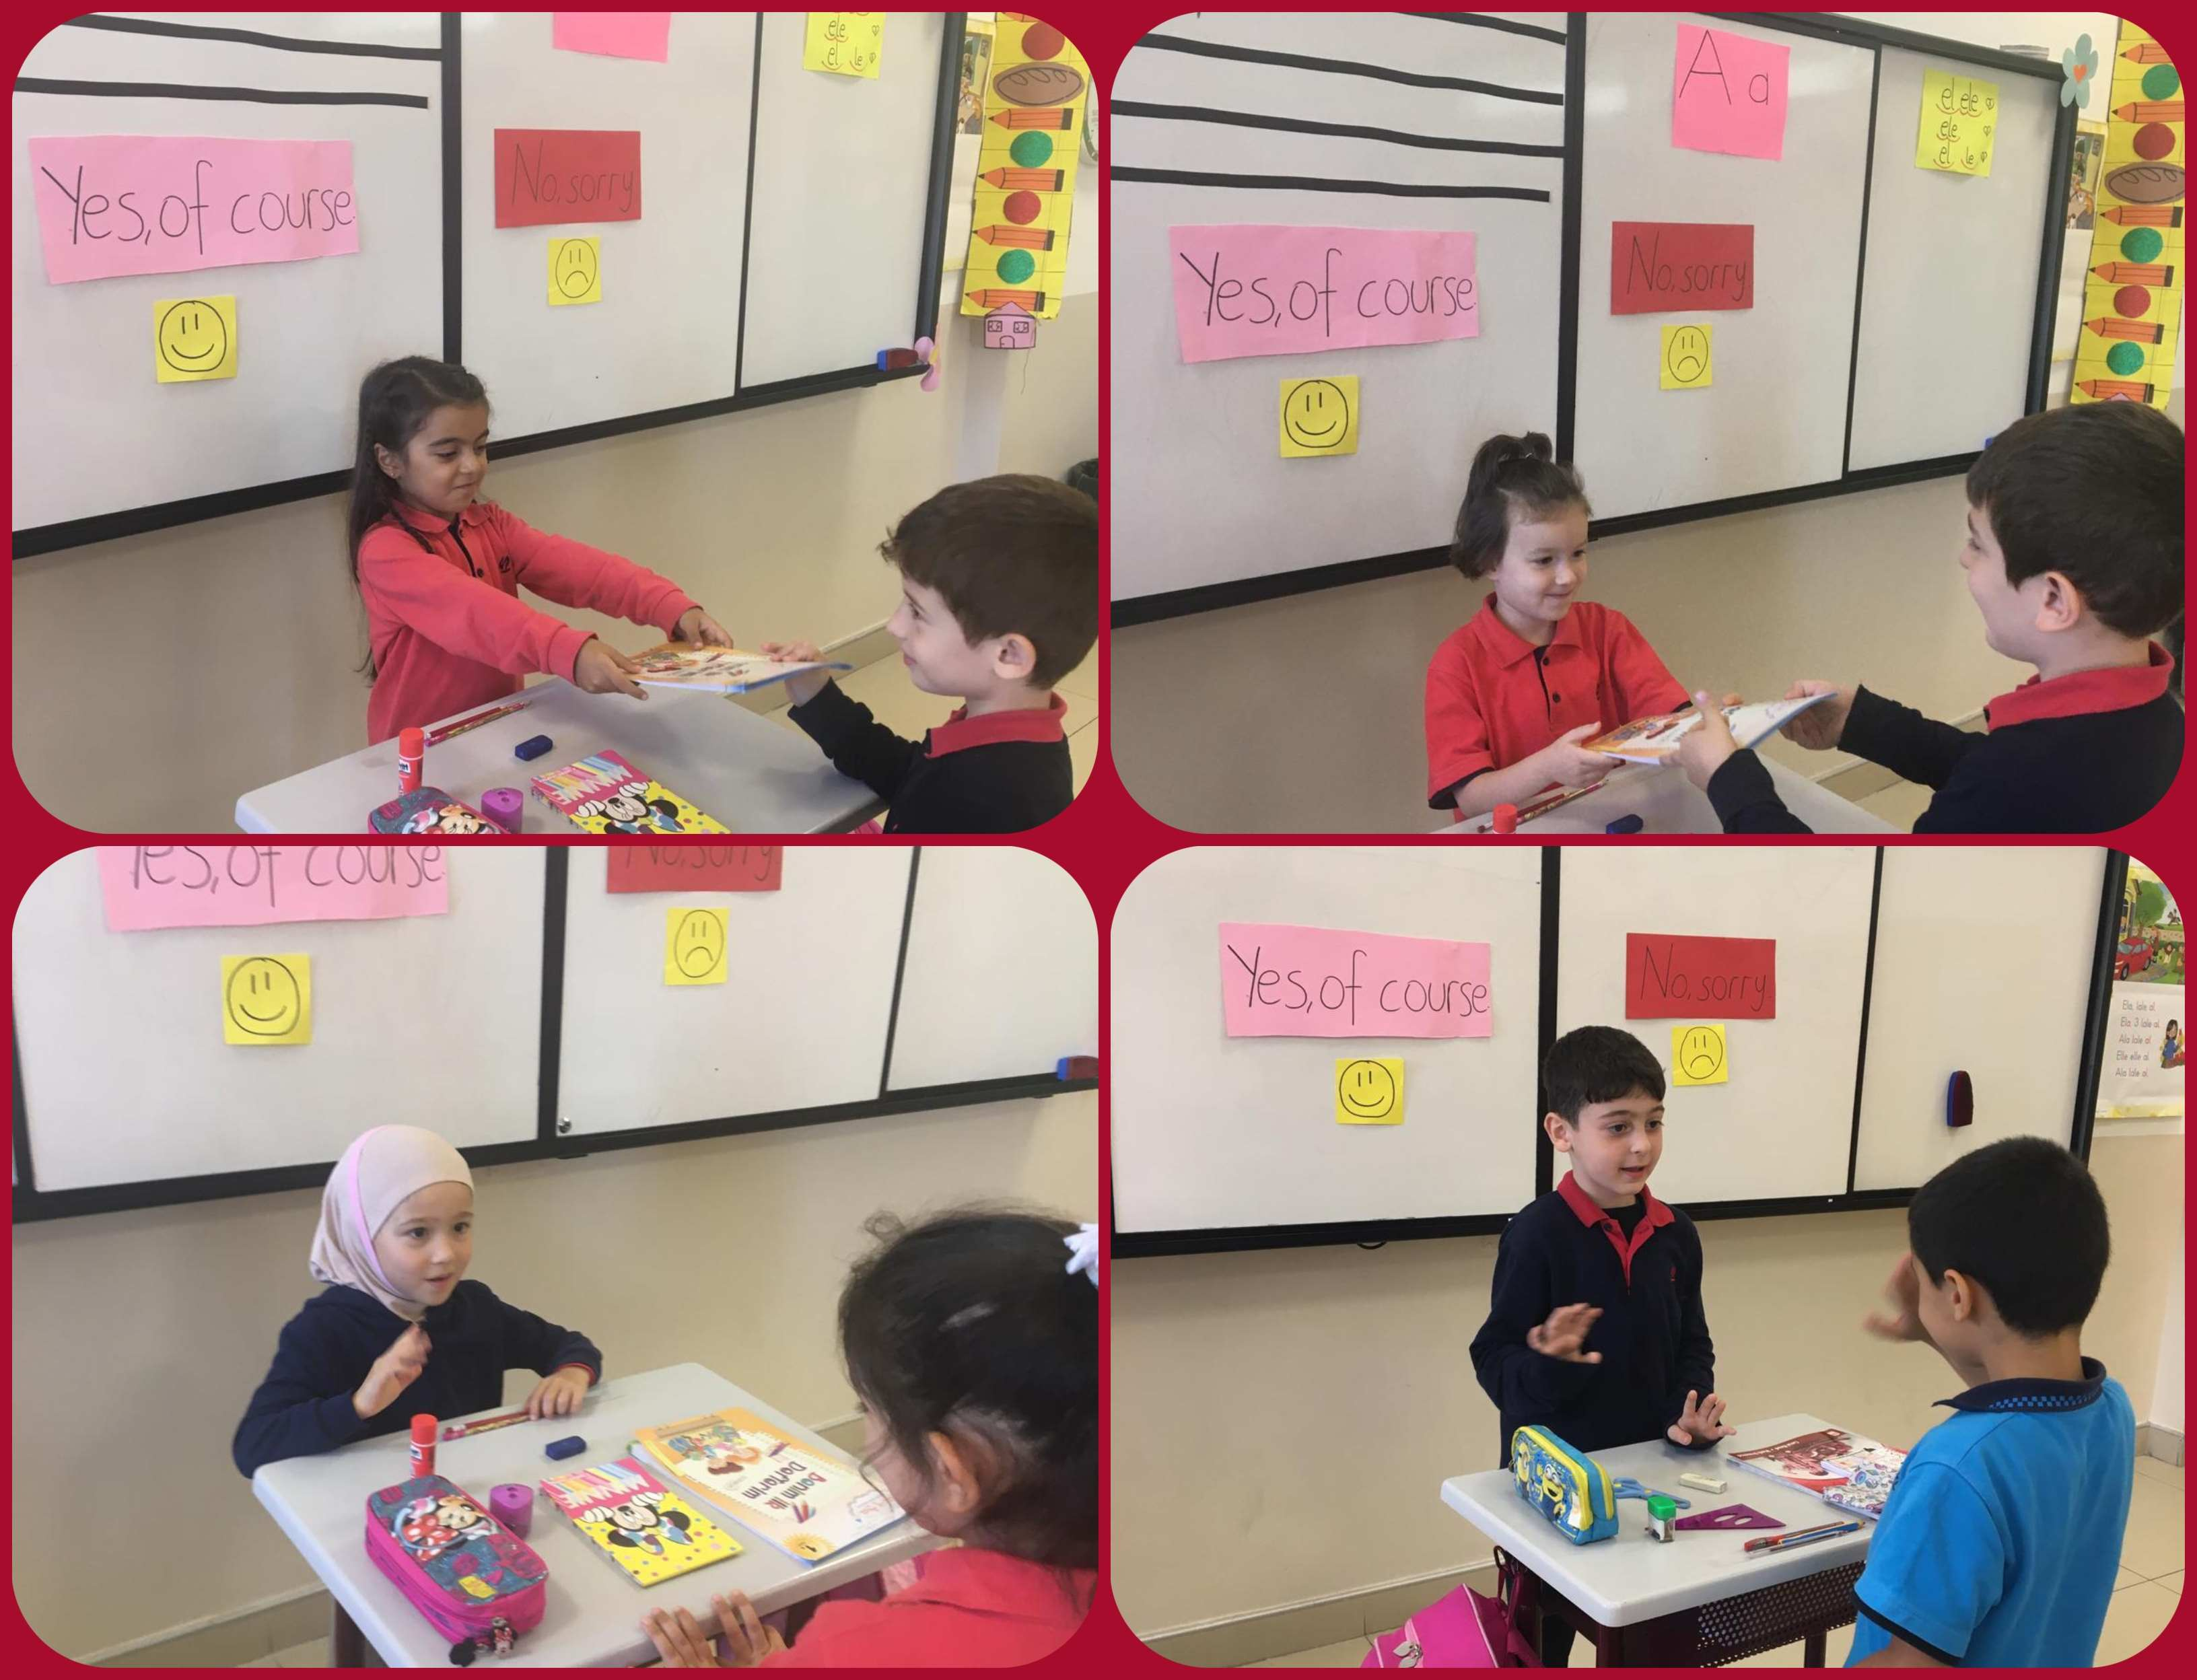 SMALL DIALOGUES WITH 1ST GRADERS